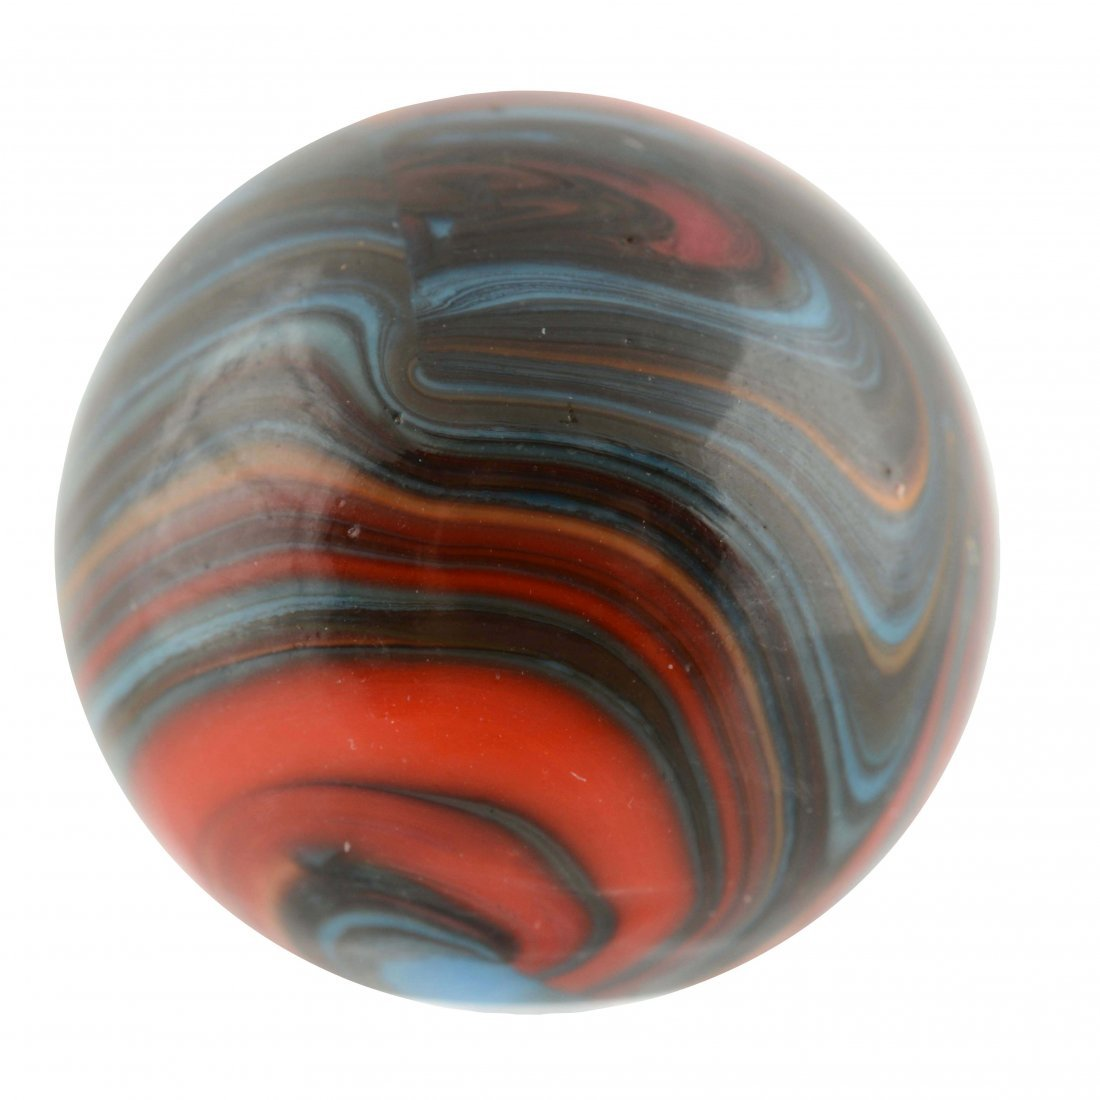 Christensen Agate Stripped Opaque Marble.